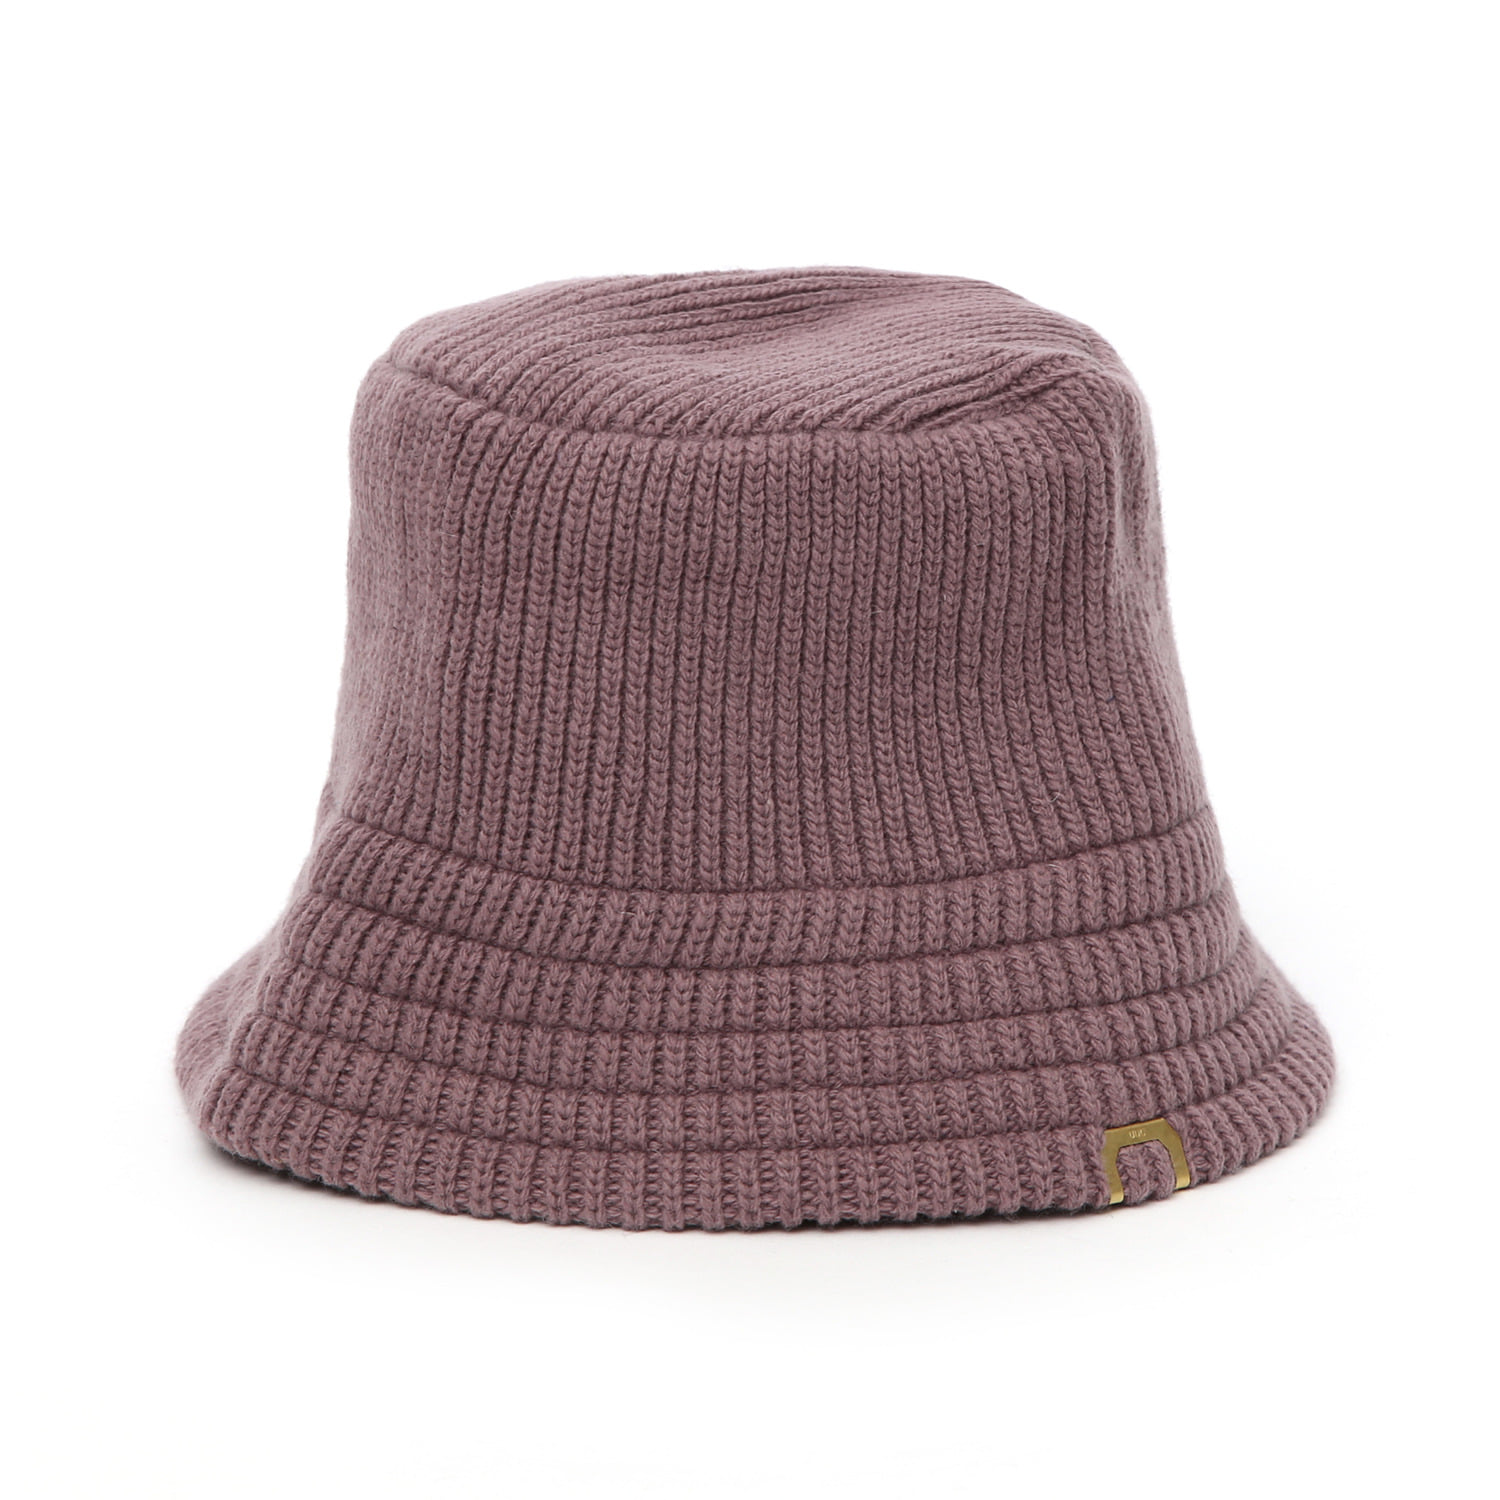 KNIT BUCKET / LAMBS WOOL / SMOKE PURPLE